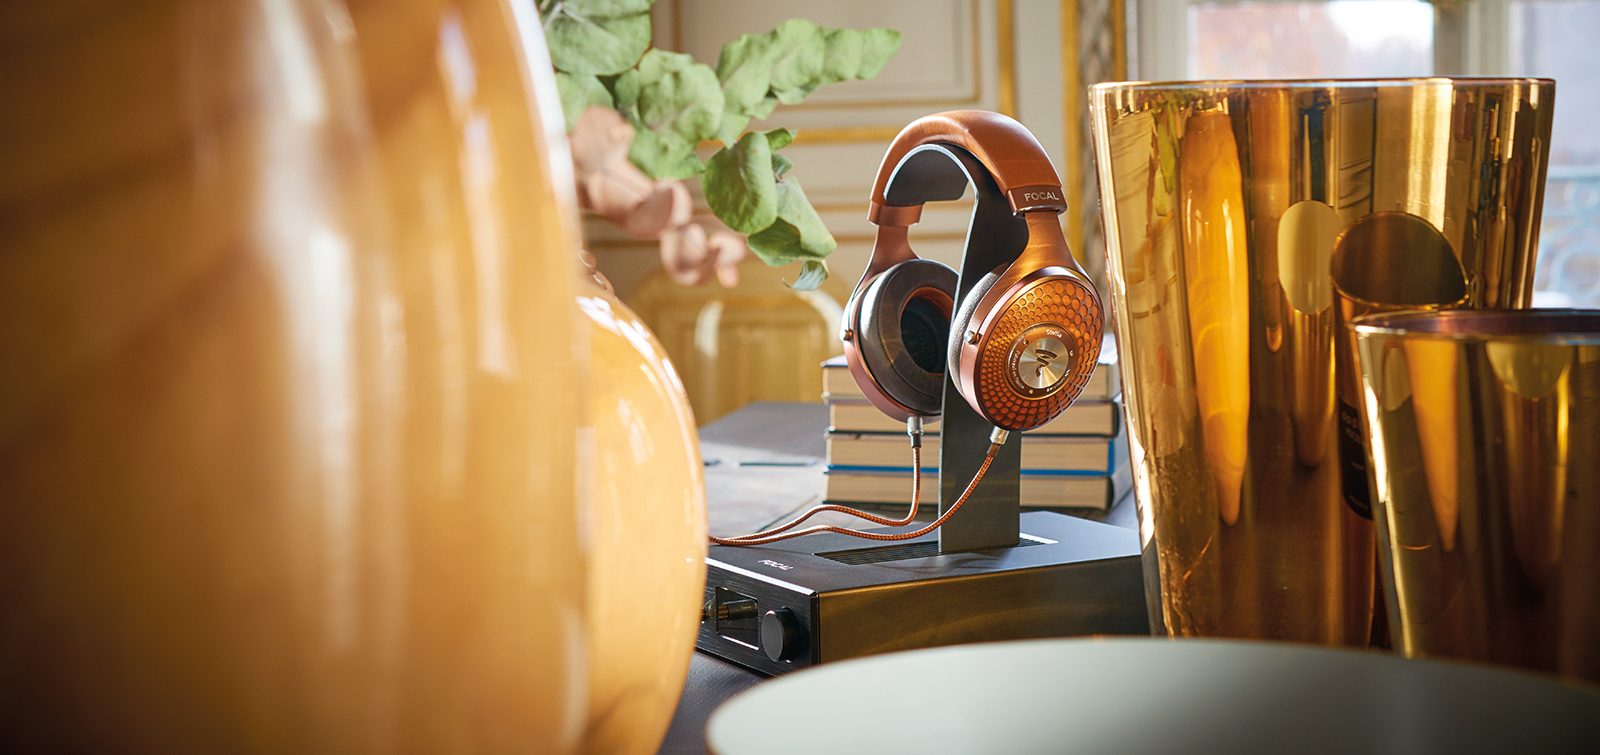 Focal Arche amplifier with Focal Stellia headphones on support in elegant room